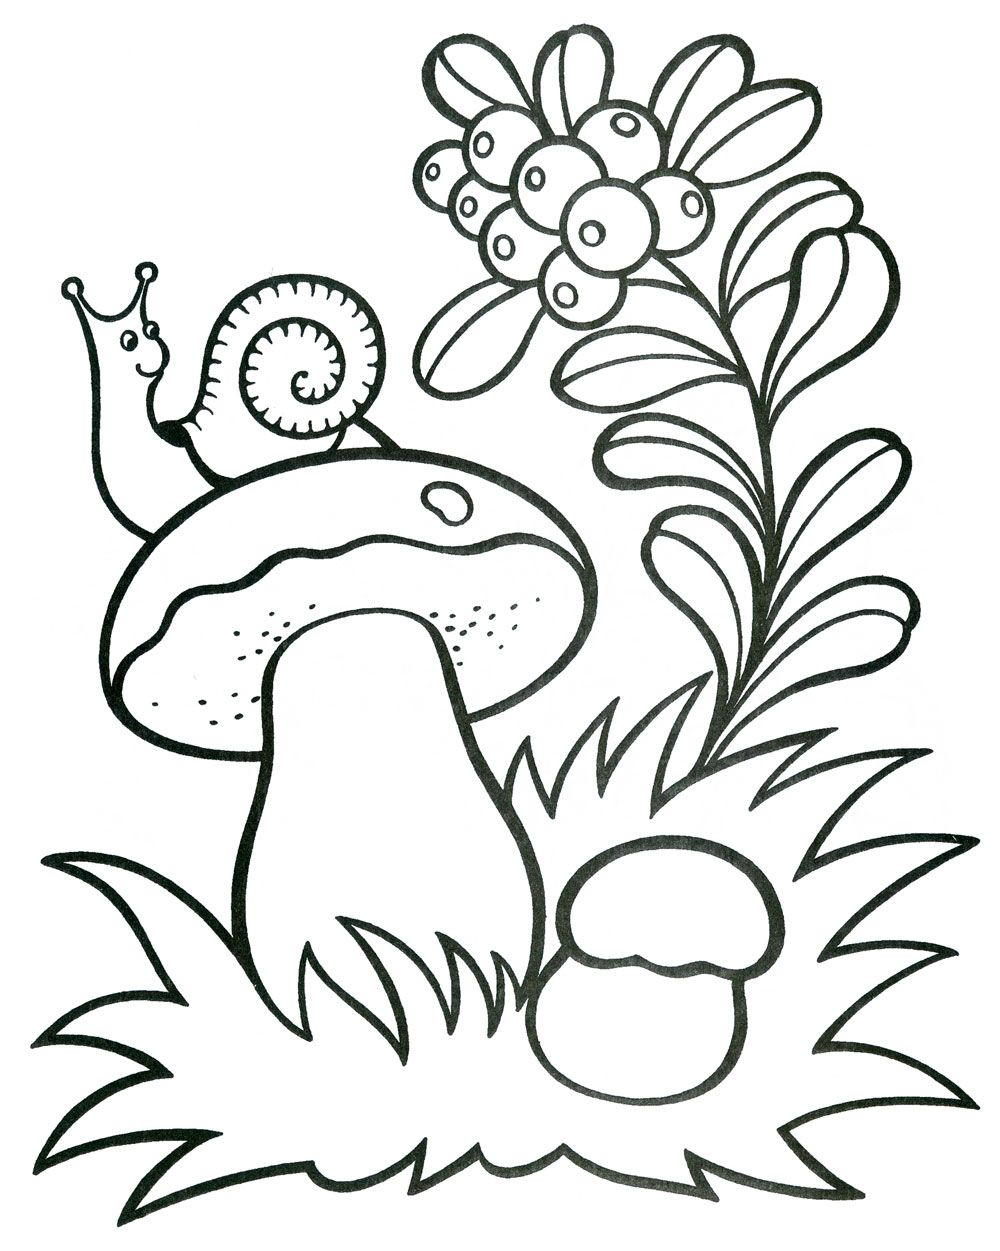 fungus coloring pages - photo#42